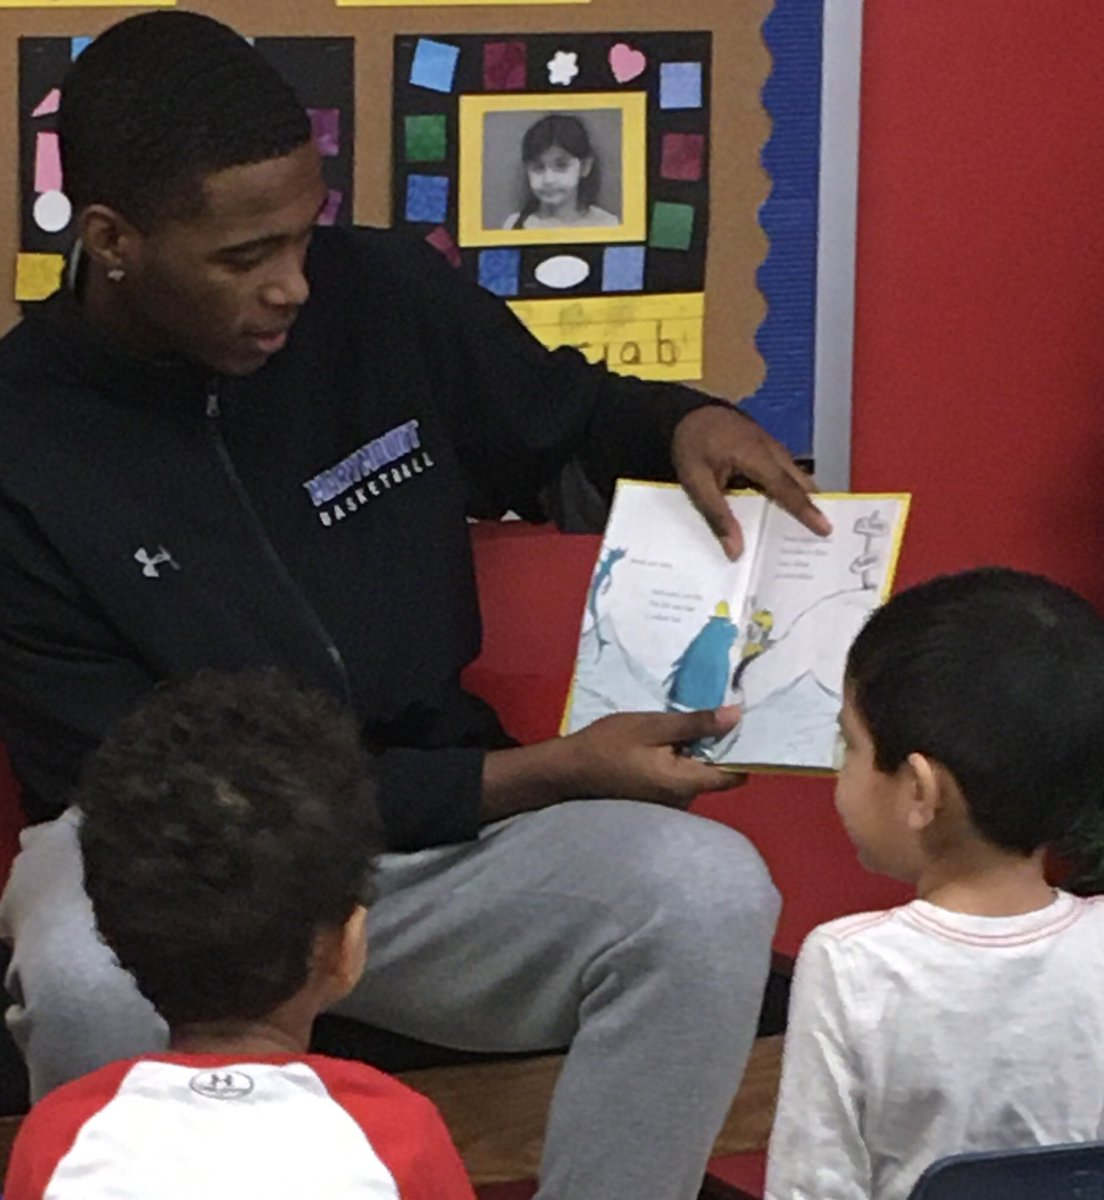 Reading with <a target='_blank' href='http://twitter.com/marymount_mbb'>@marymount_mbb</a> men's basketball players <a target='_blank' href='http://search.twitter.com/search?q=abdrocks'><a target='_blank' href='https://twitter.com/hashtag/abdrocks?src=hash'>#abdrocks</a></a> <a target='_blank' href='https://t.co/PdJb7mpnHs'>https://t.co/PdJb7mpnHs</a>